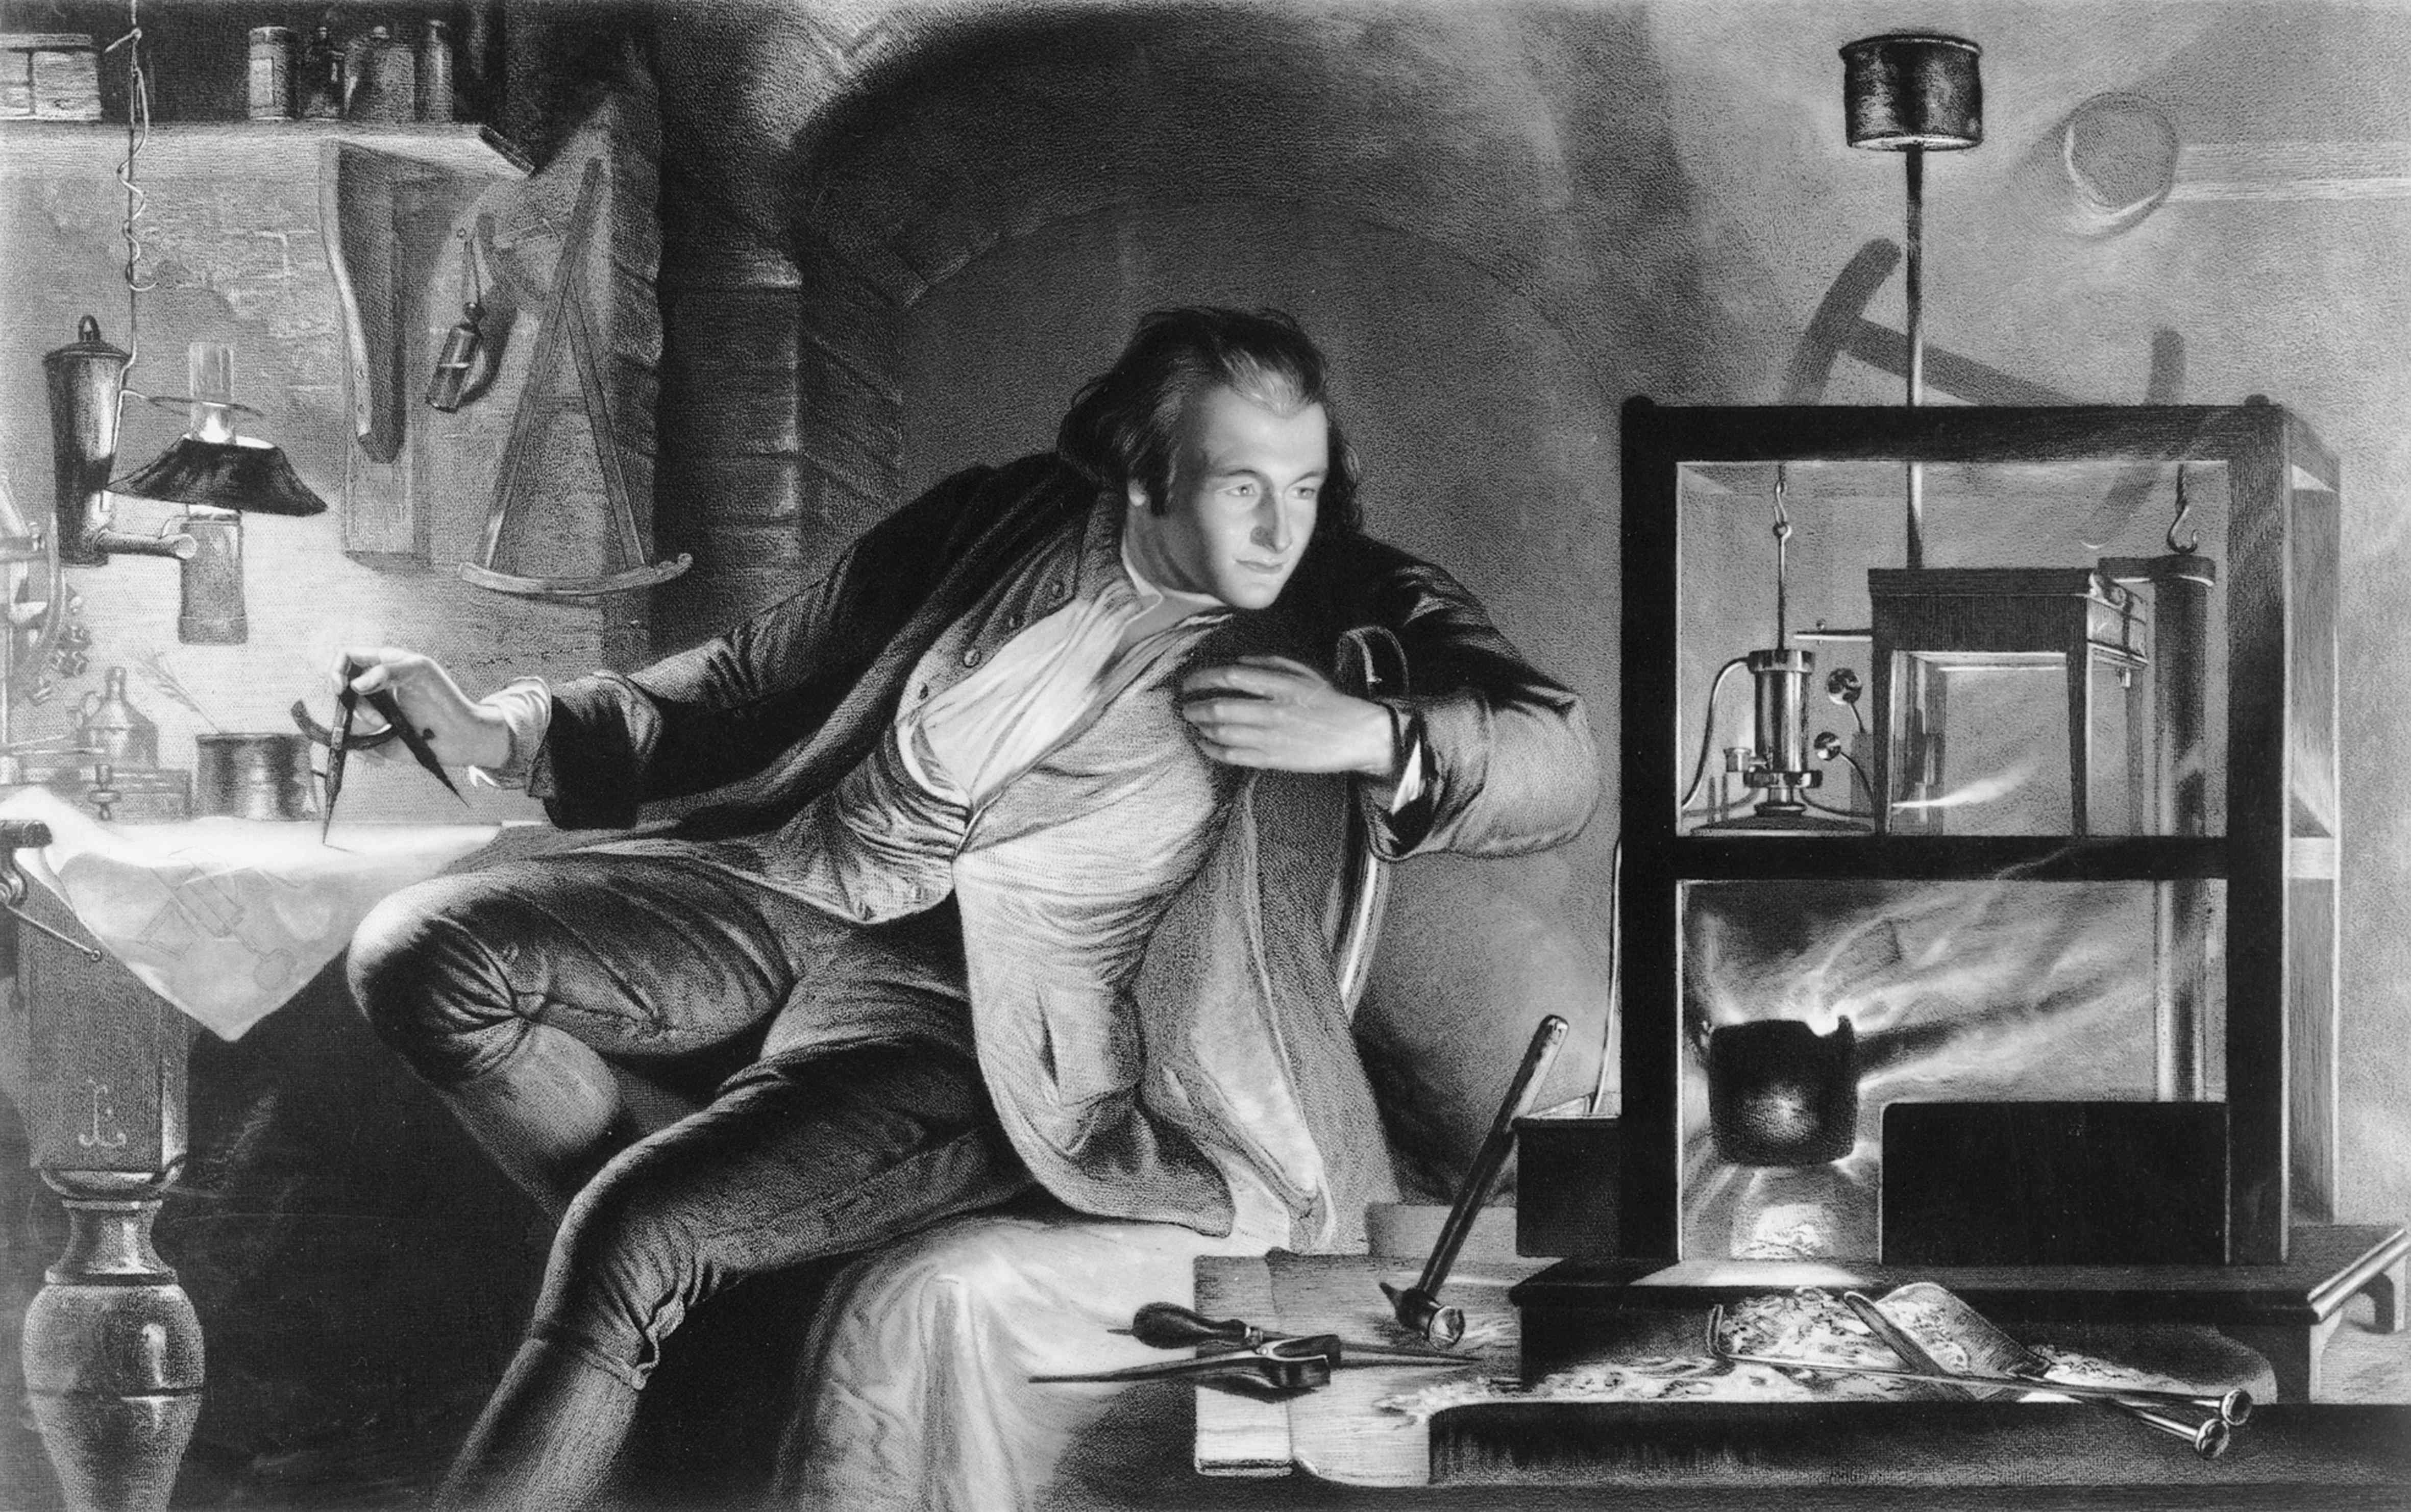 James Scott portrait of a young James Watt working on the design of his steam engine, c1769